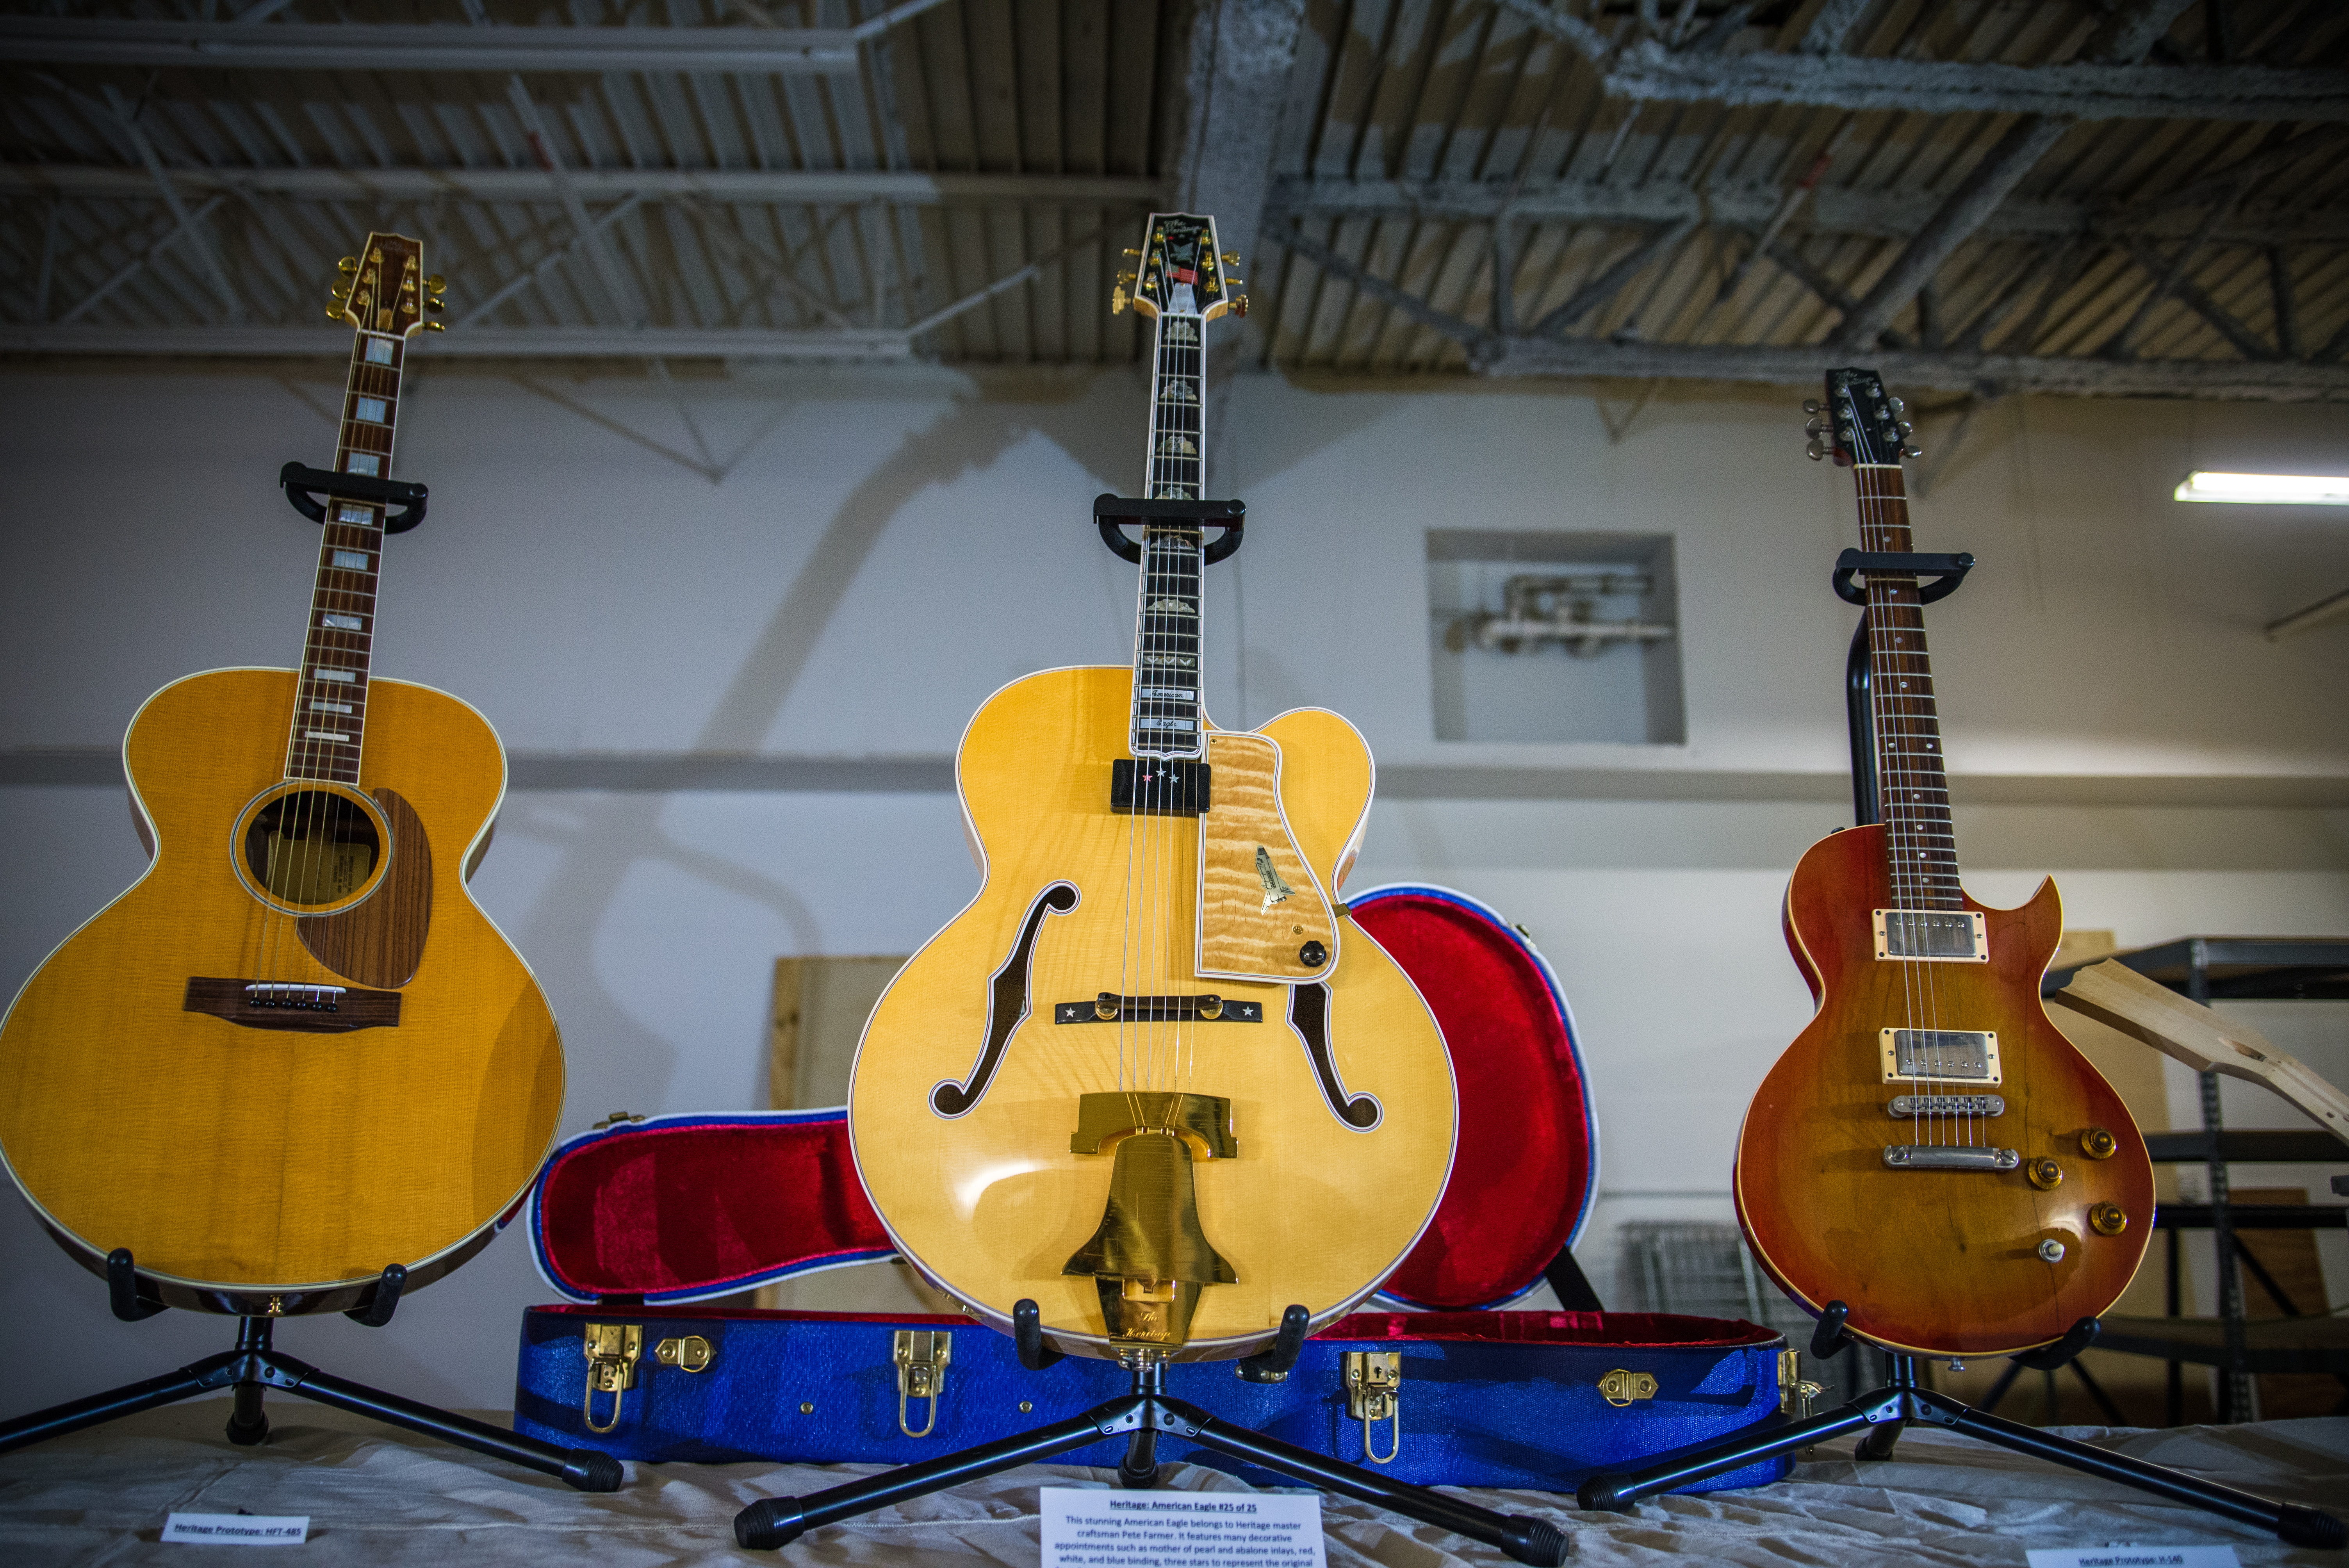 Heritage Guitar hosted a daylong celebration of 100 years in Kalamazoo, Mich., on Sept. 9.